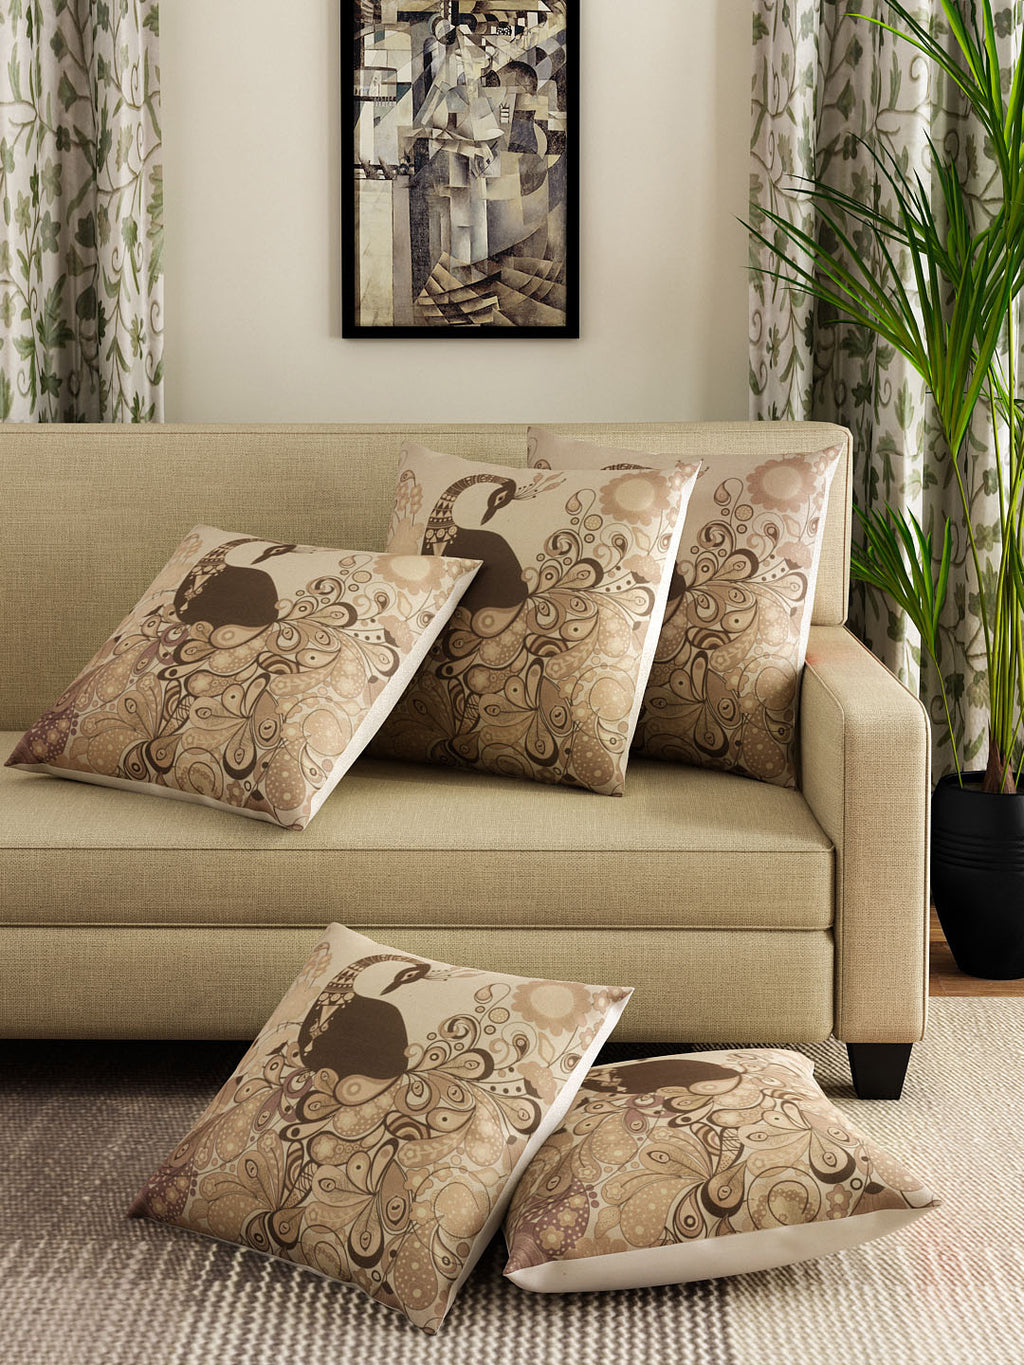 Detec™ Hosta Beige 16 x 16 inches Printed Cushion Cover (Set of 5 )